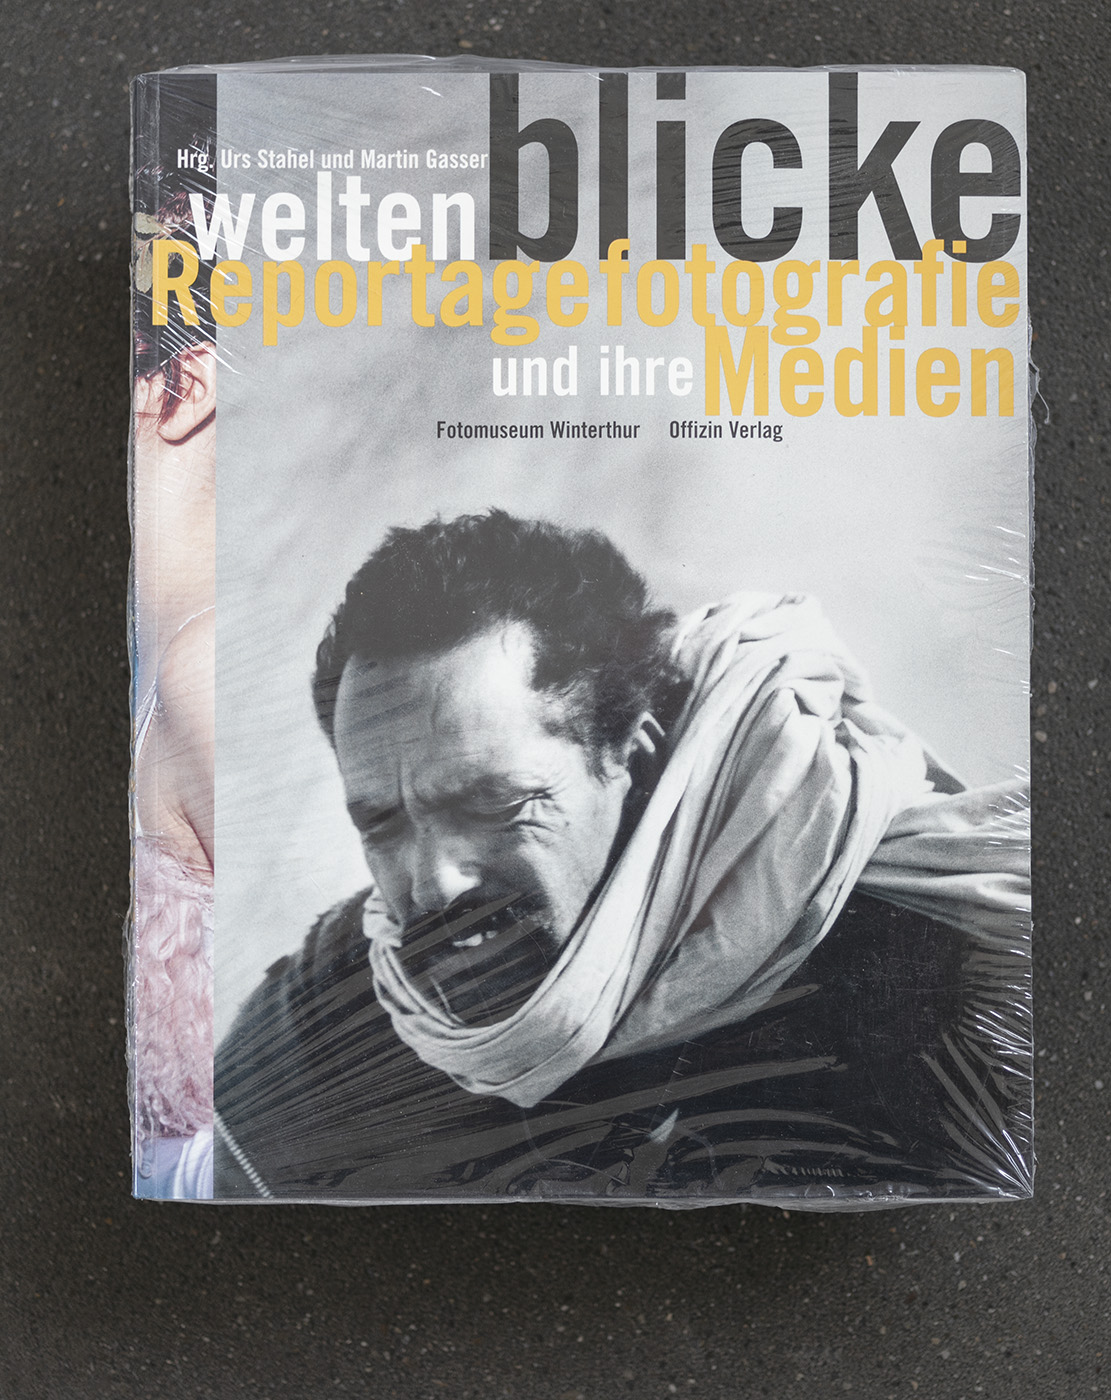 Weltenblicke, exhibition catalogue